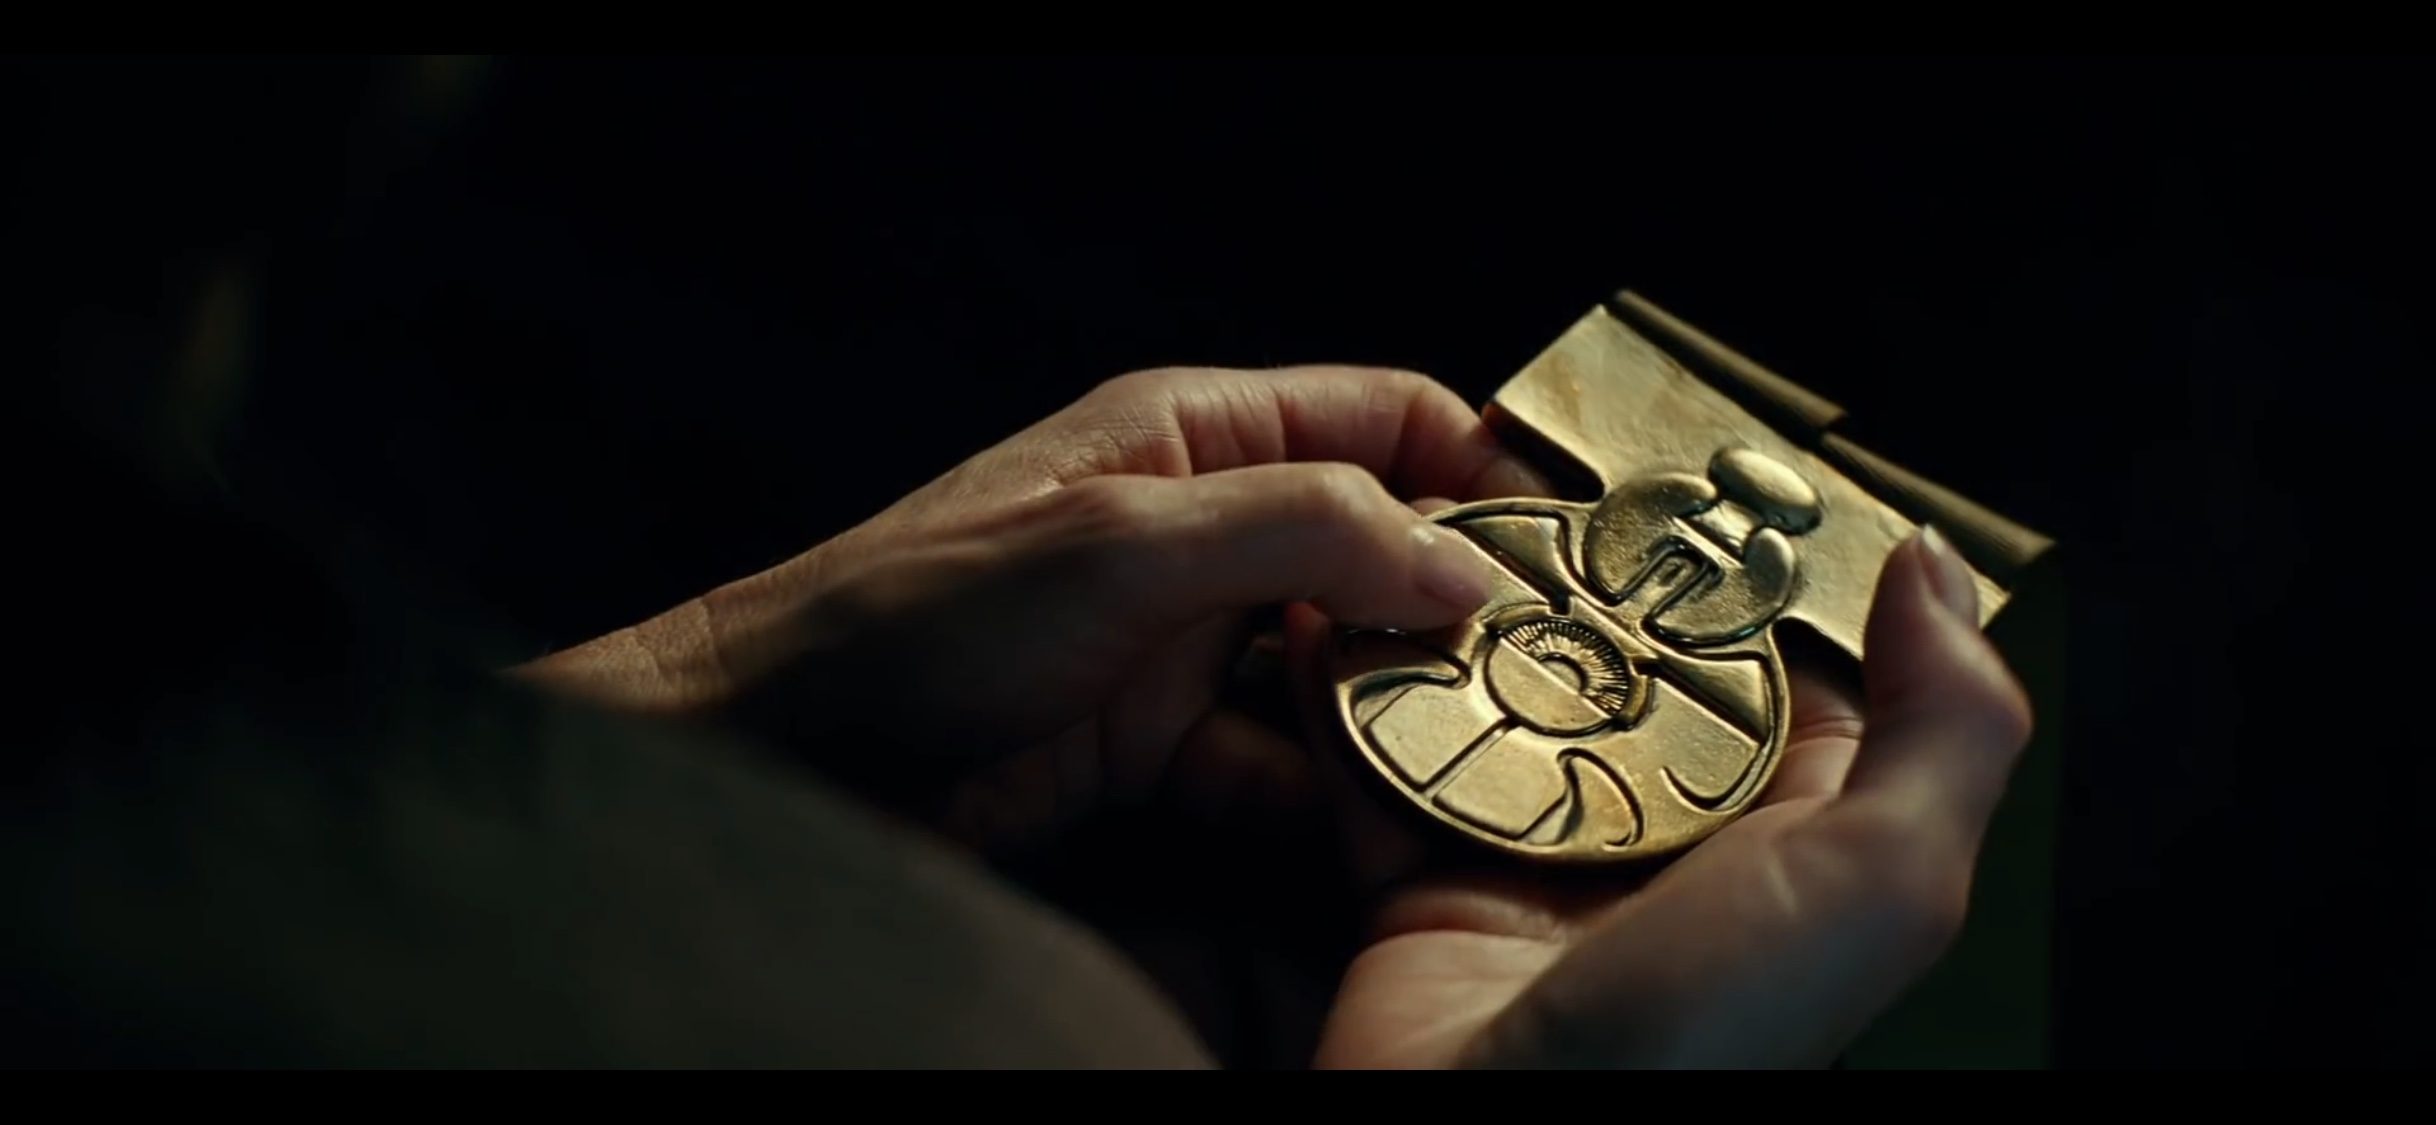 Leia holding the medal she gave to Han or Luke